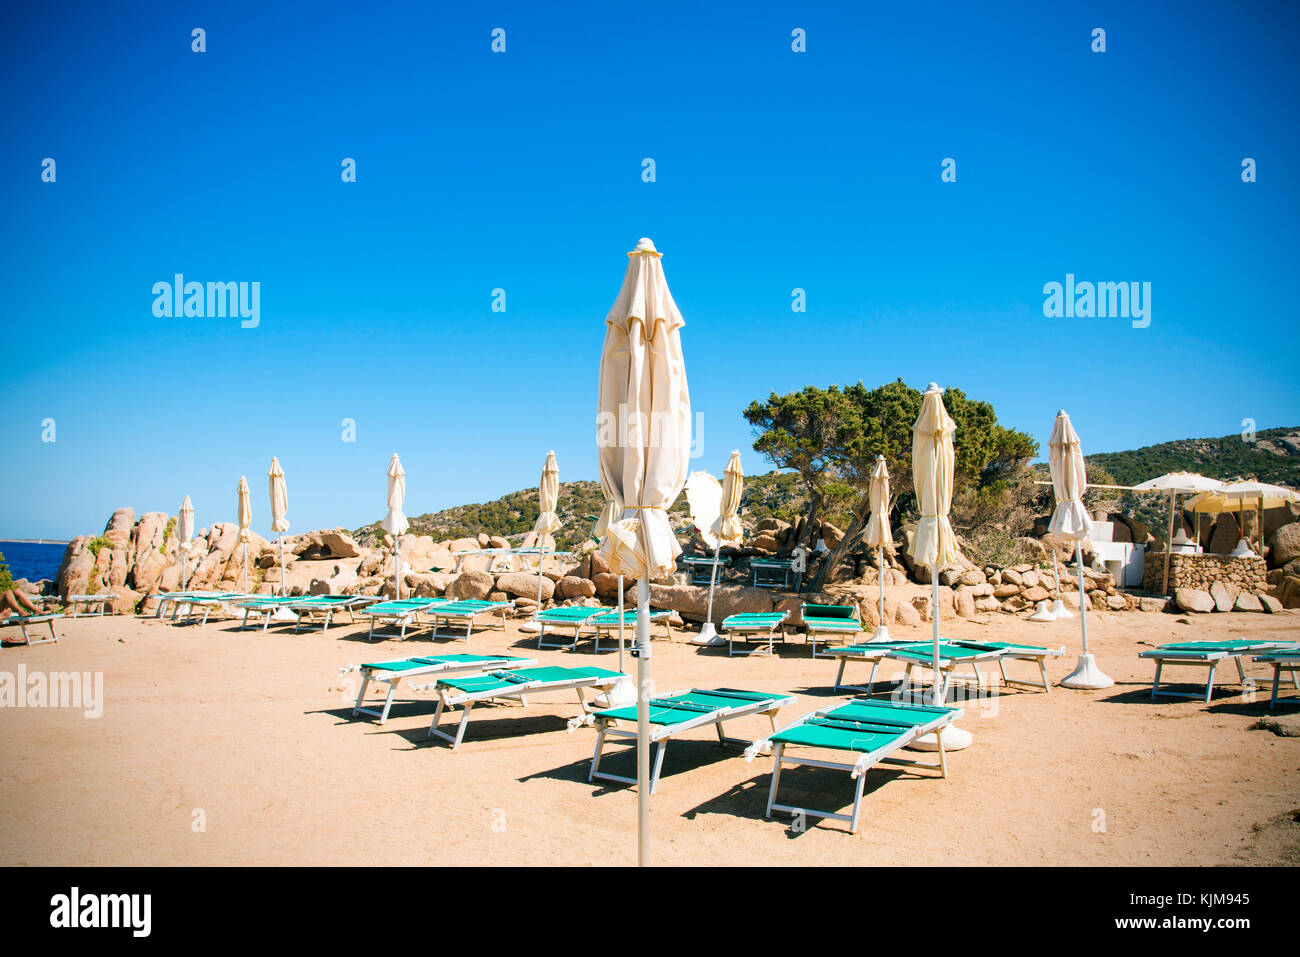 some sunloungers and umbrellas in a beach in Baja Sardinia, Sardinia, Italy - Stock Image